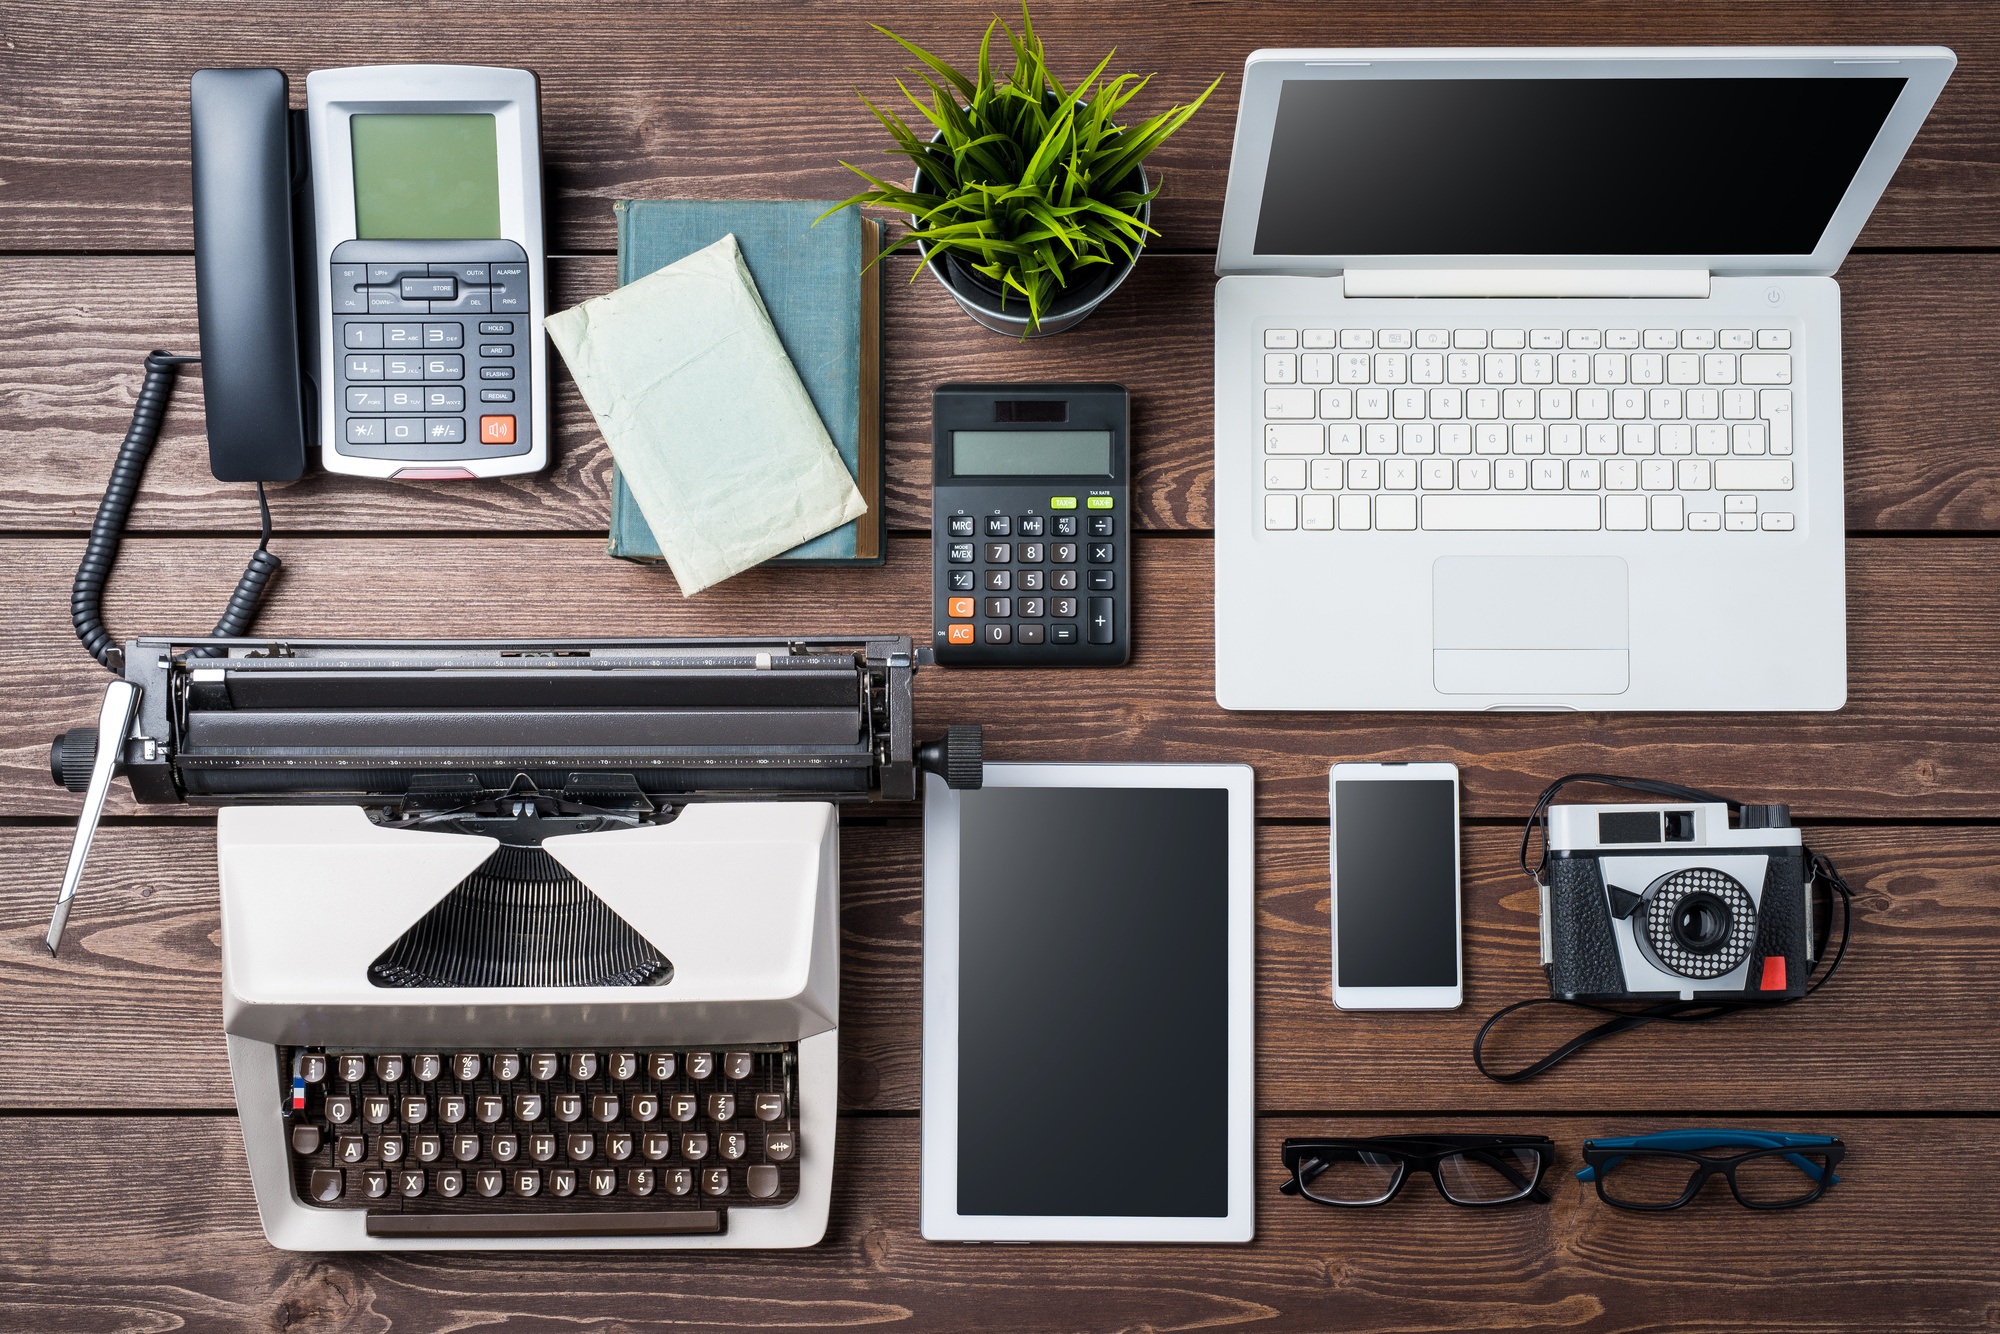 technology products laid out on a wooden table such as a typewriter, ipad, phone, camera, laptop, etc.